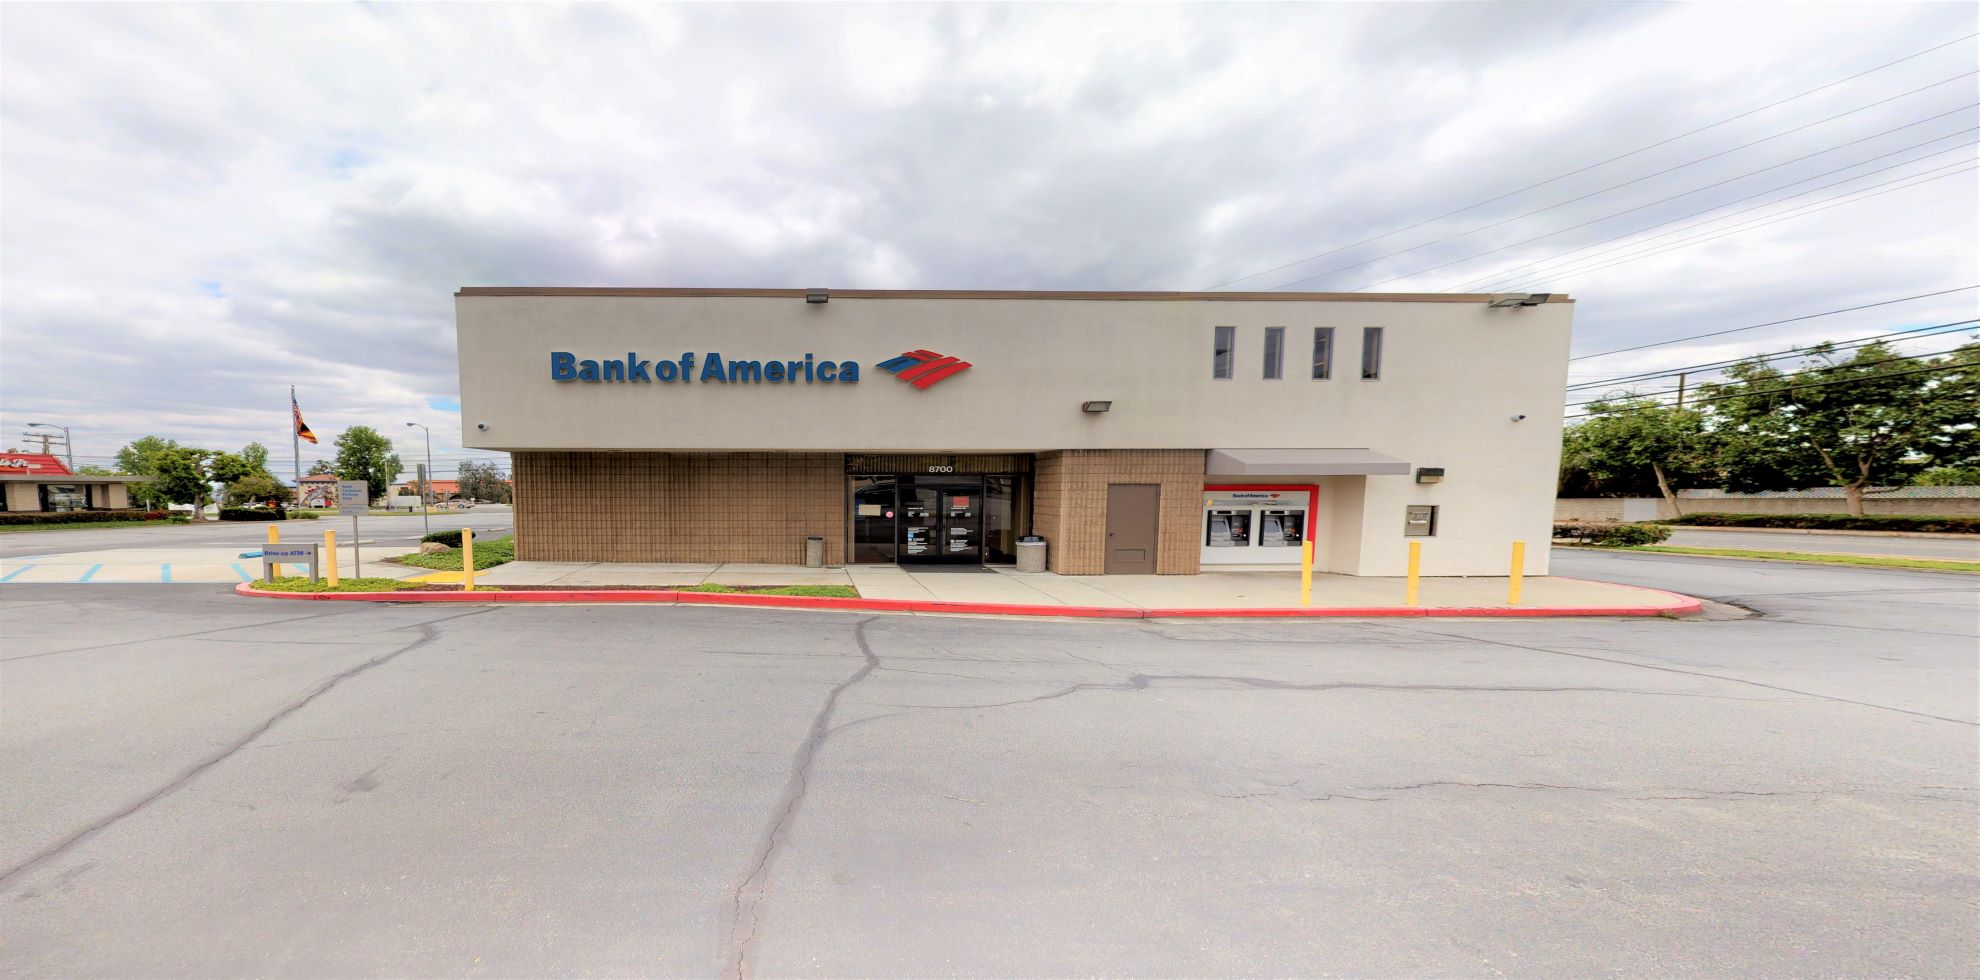 Bank of America financial center with drive-thru ATM   8700 Baseline Rd, Alta Loma, CA 91701